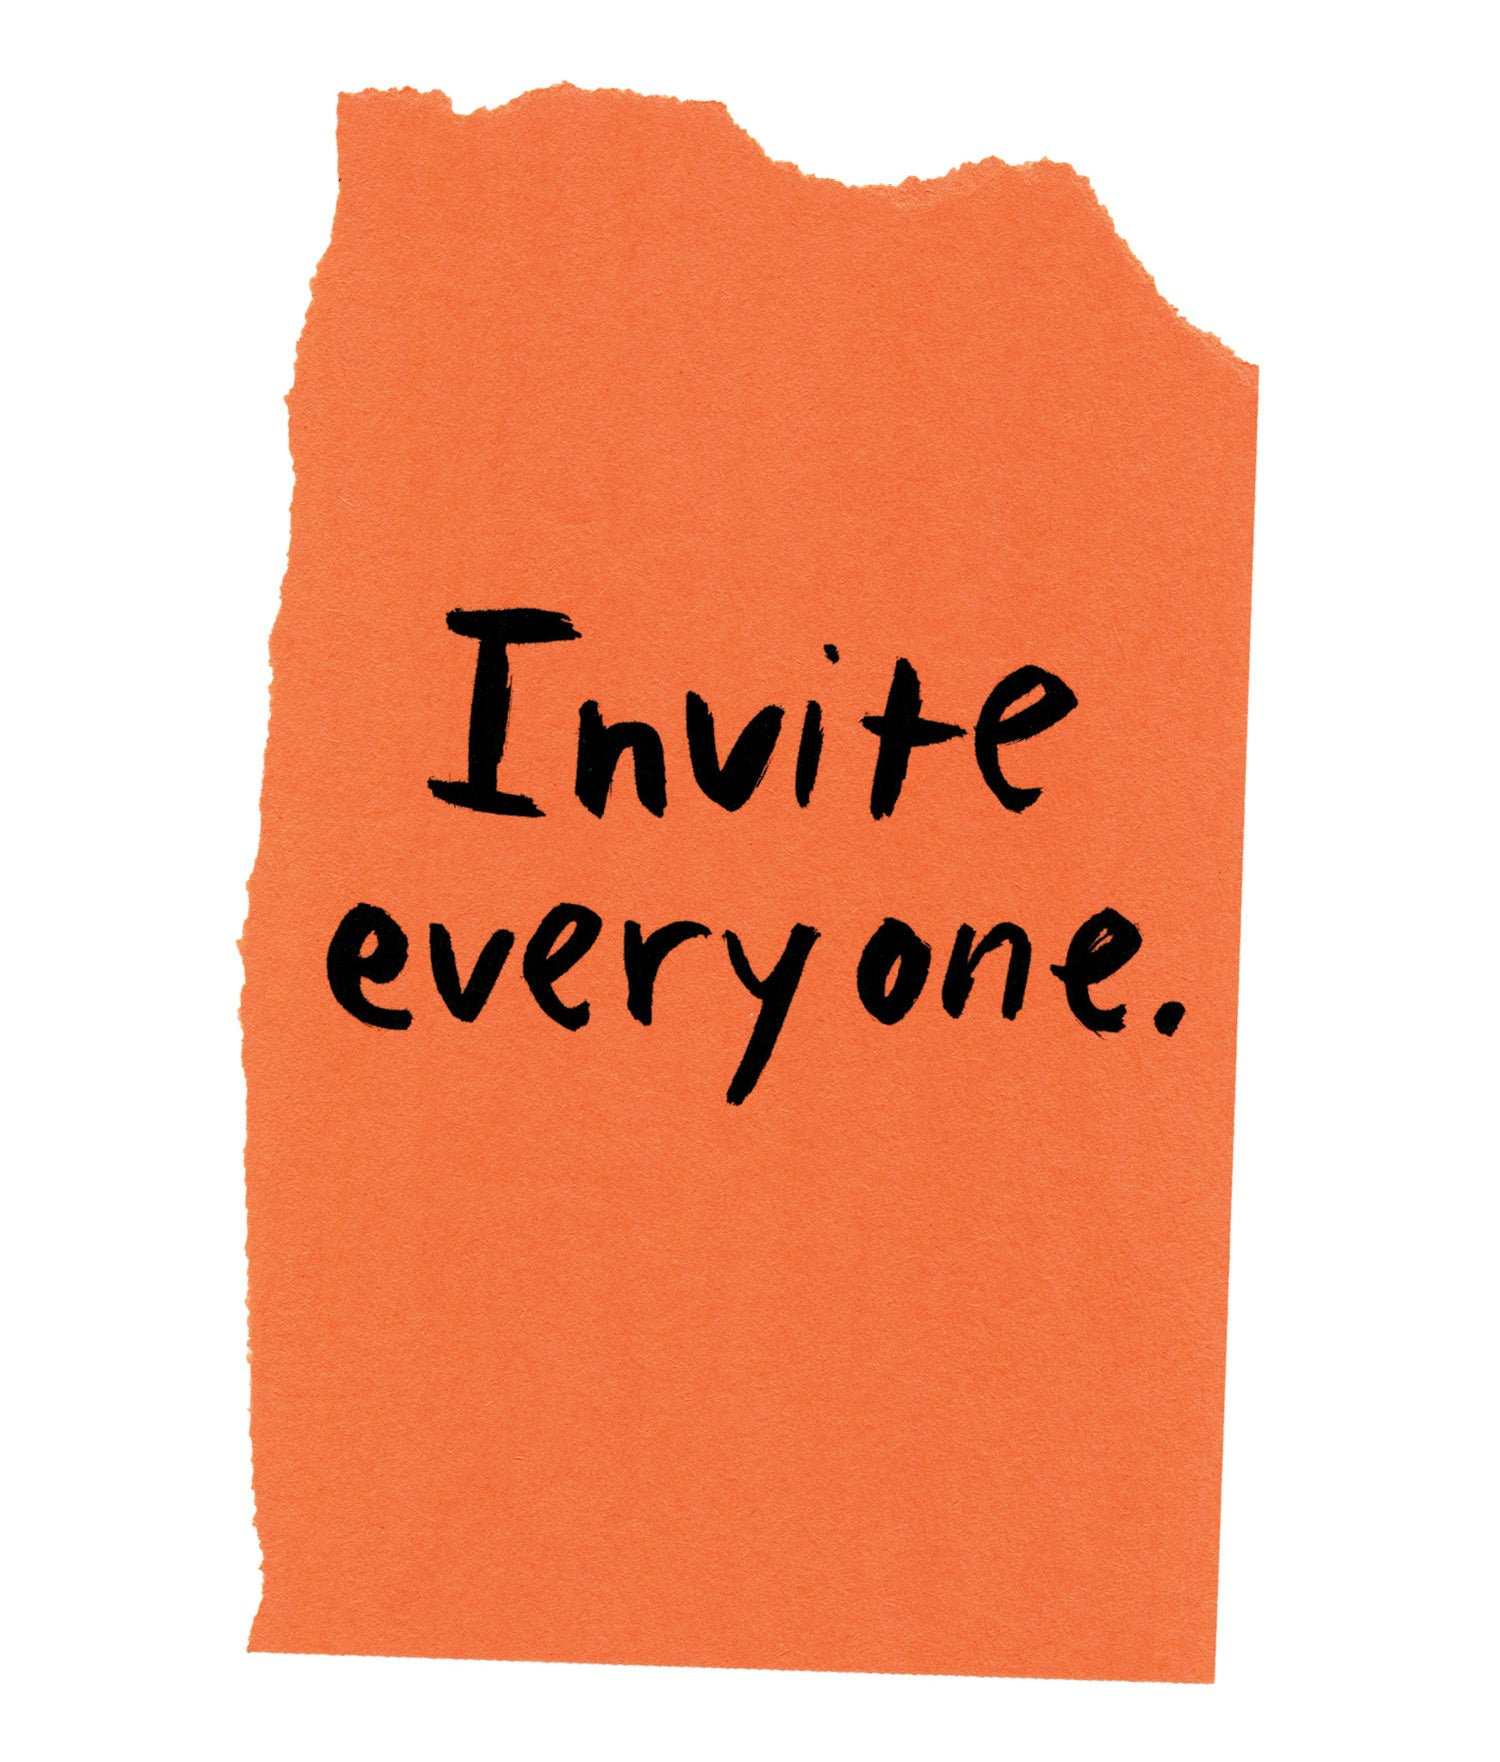 """Handwritten text on torn piece of colored paper: """"Invite everyone."""""""